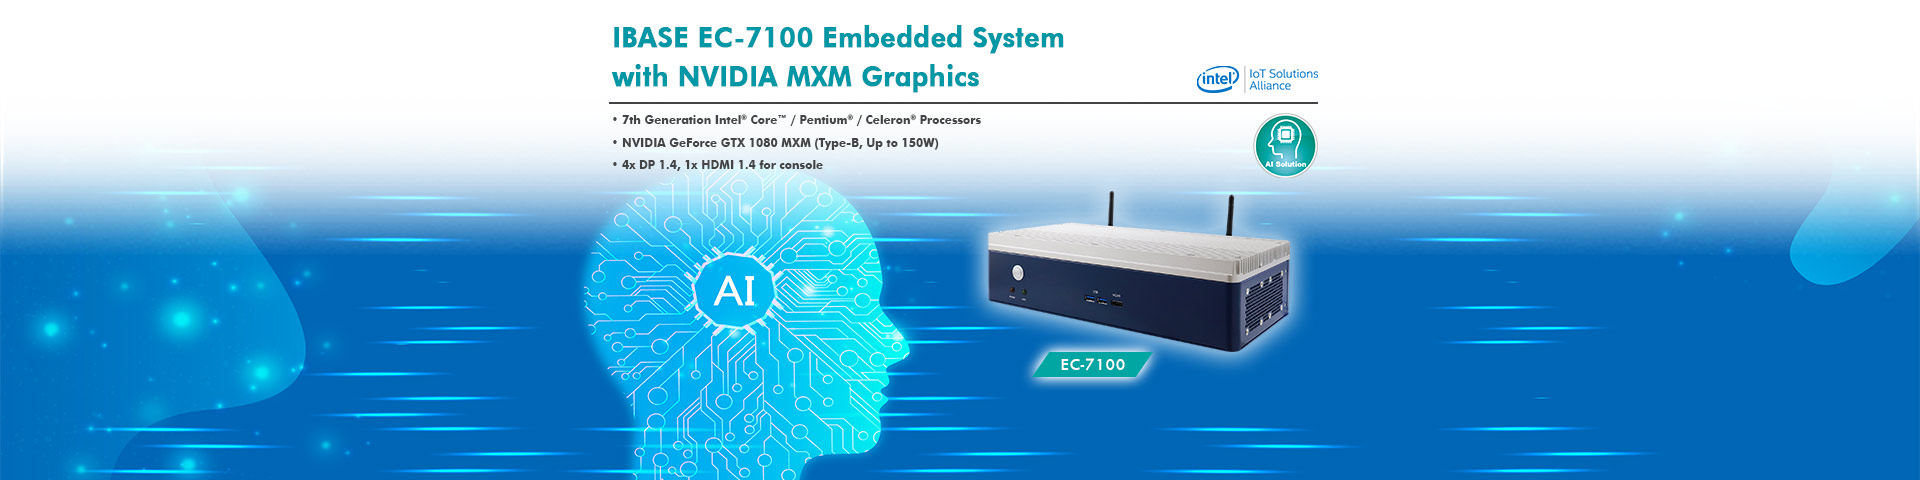 IBASE Unveils EC-7100 Embedded System with NVIDIA MXM Graphics Card